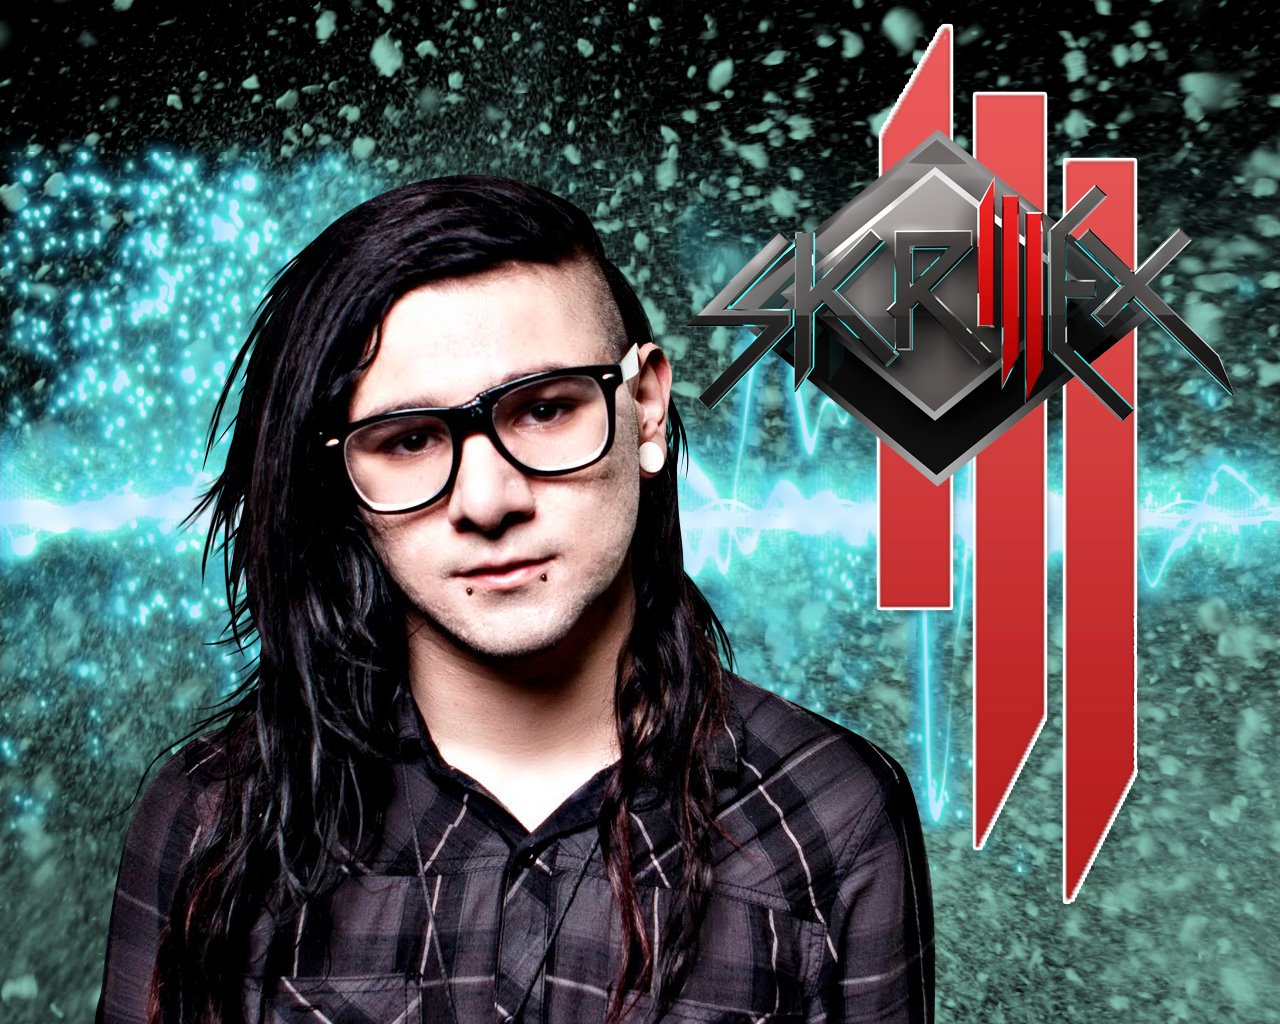 ... Skrillex People ...